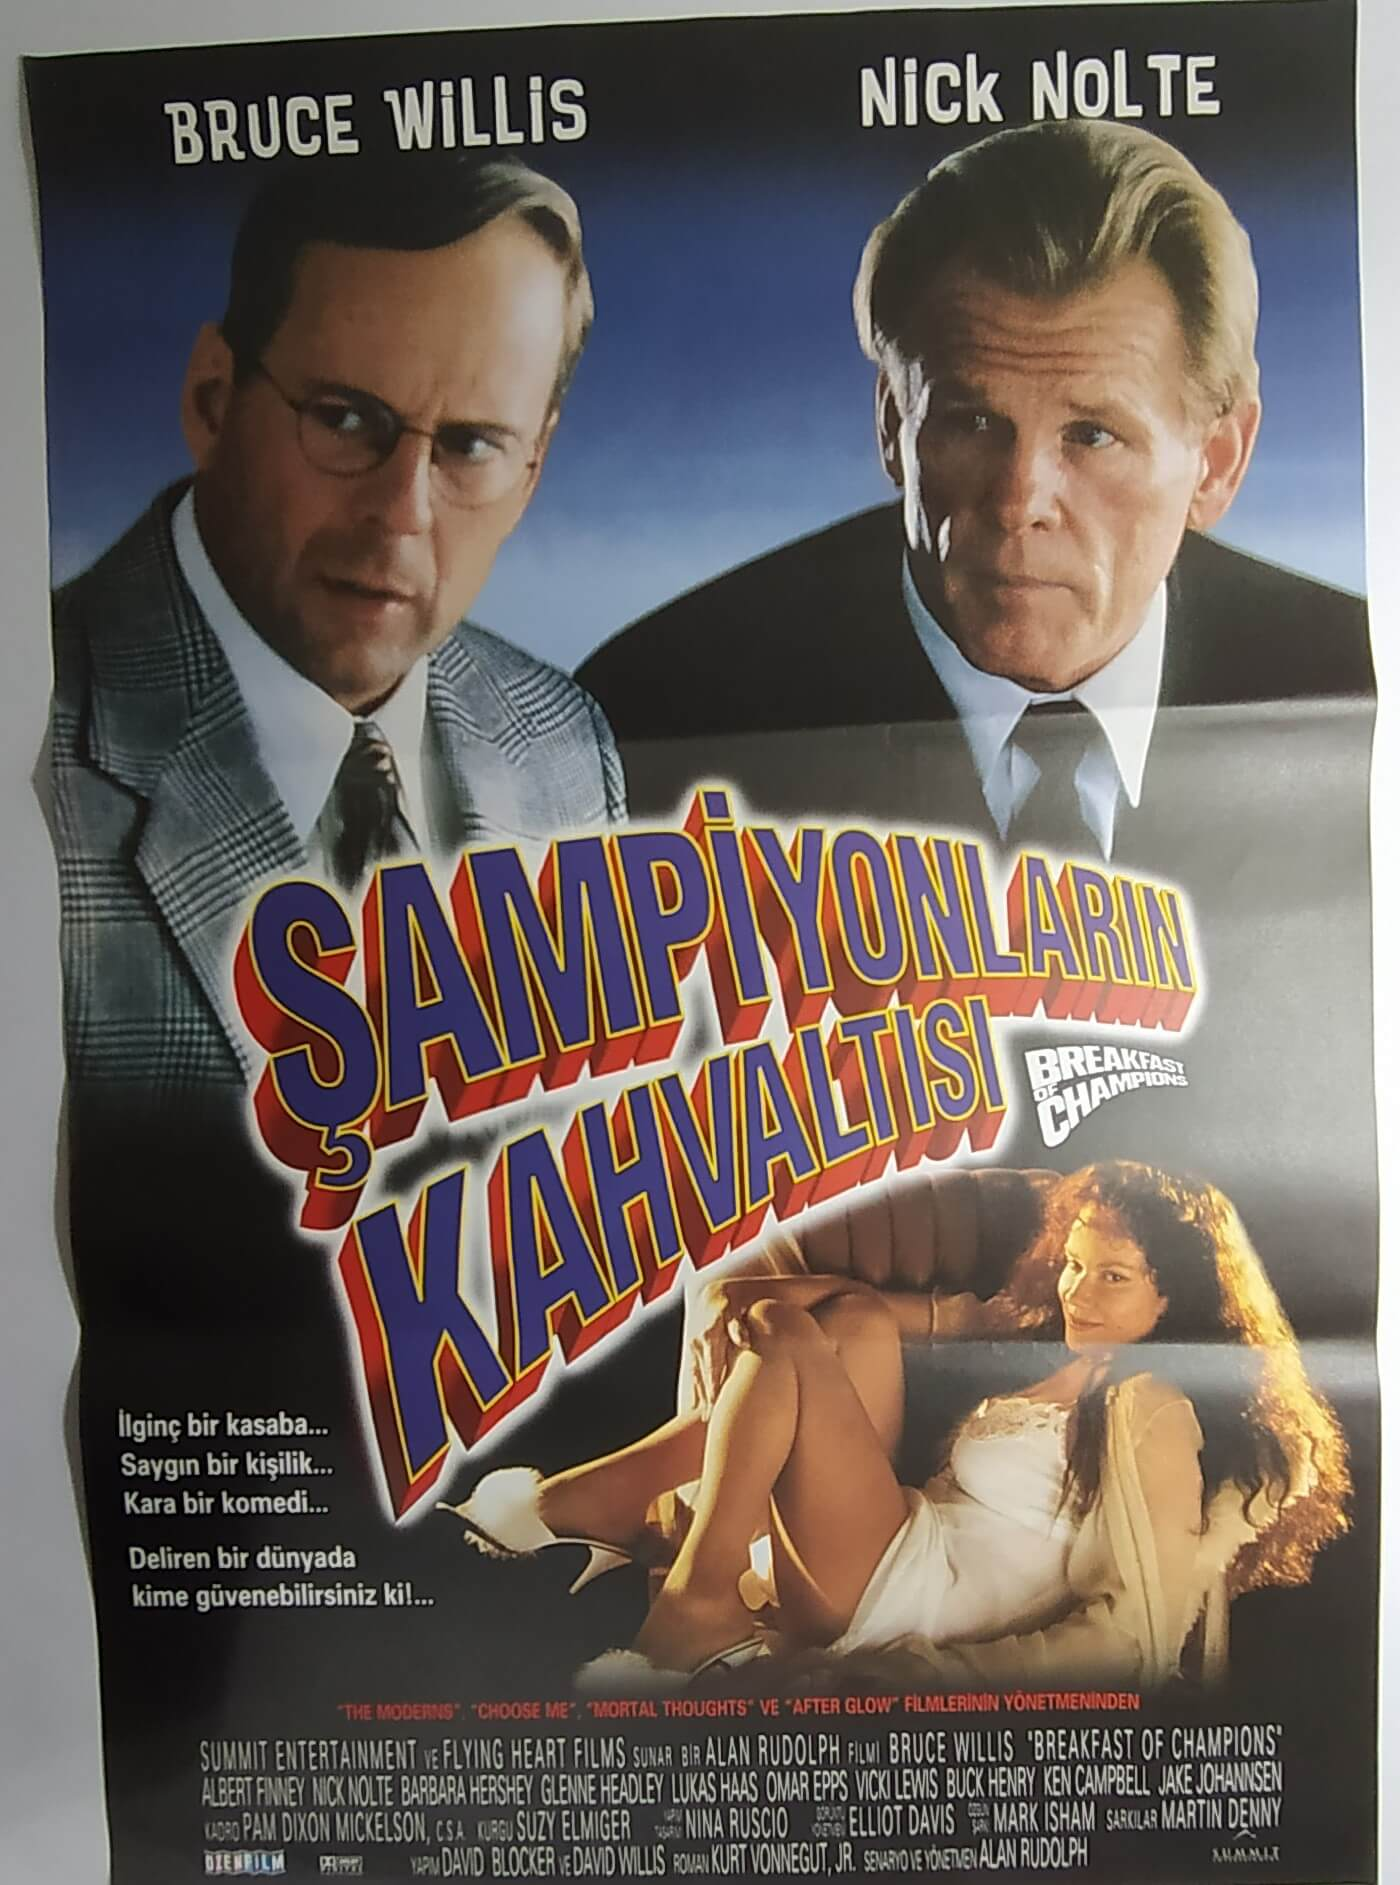 BREAKFAST OF CHAMPIONS movie poster